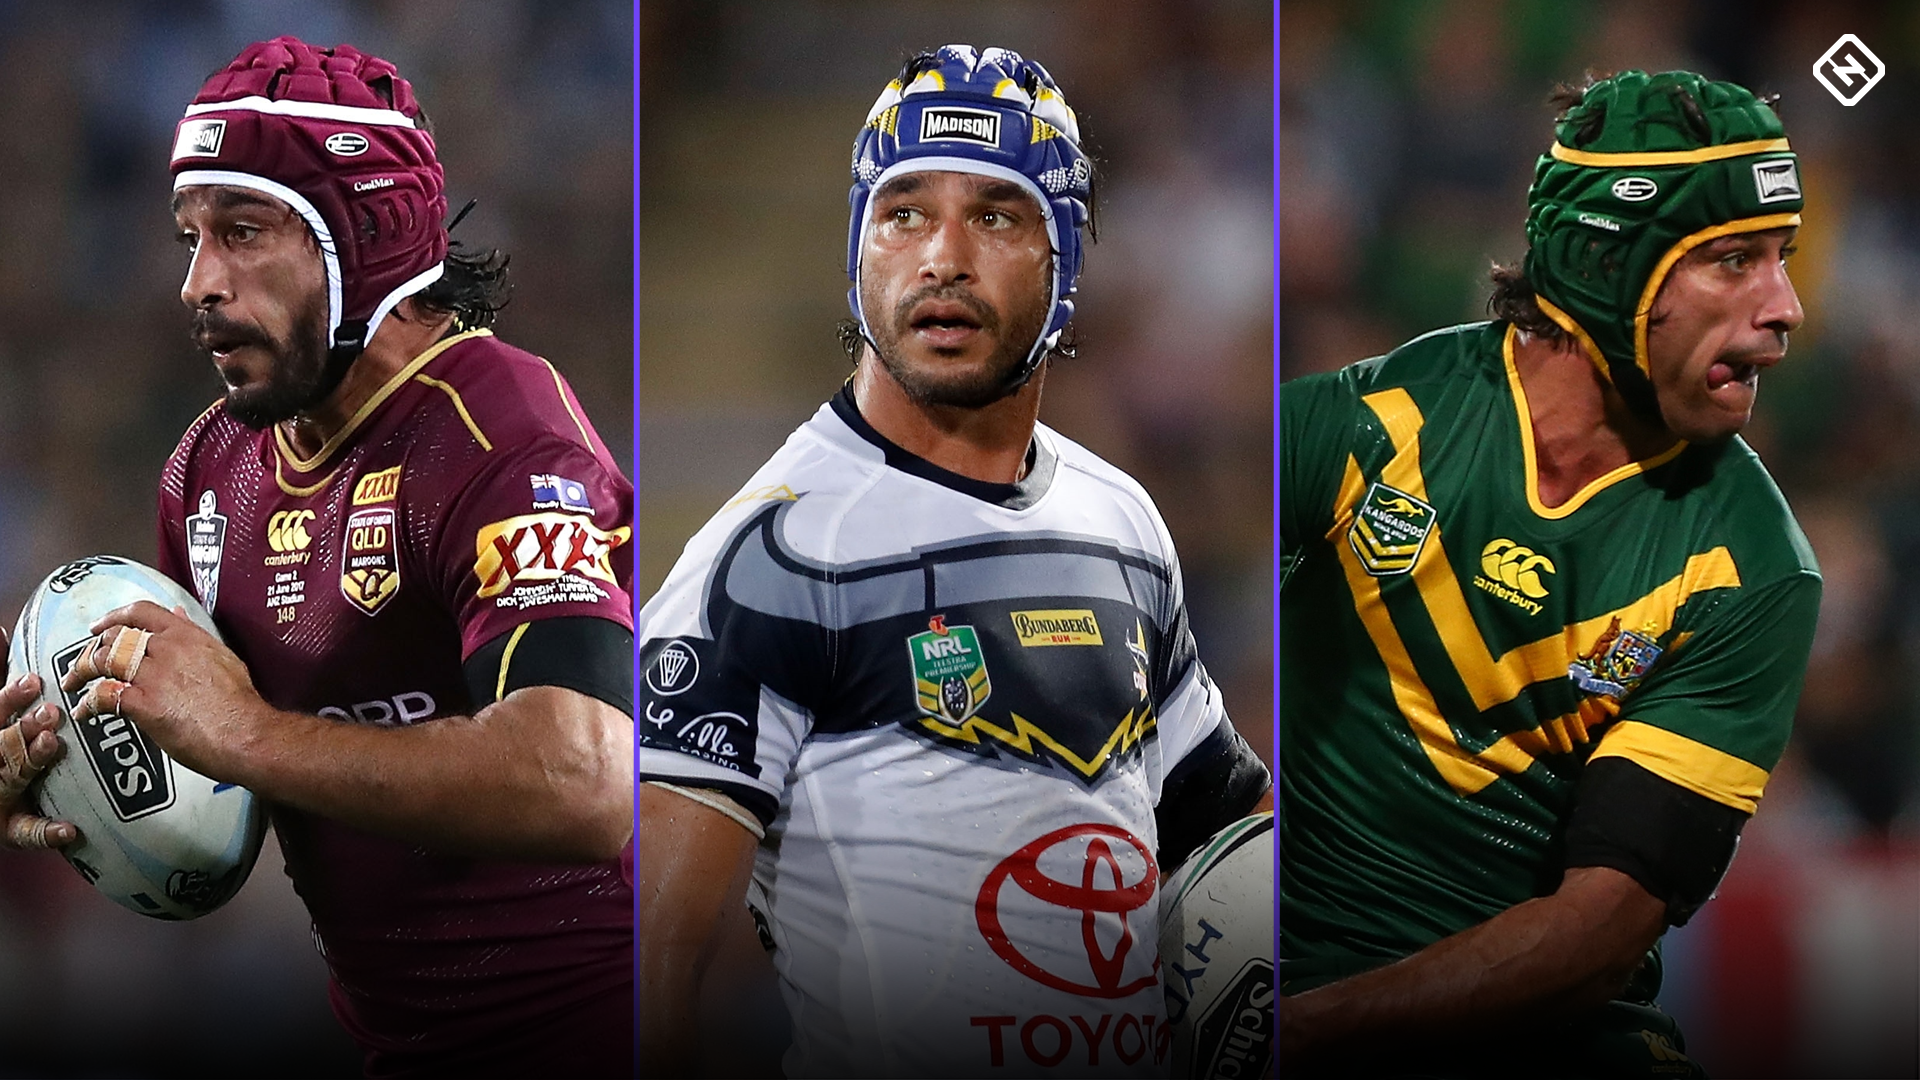 Farewell JT: Johnathan Thurston's incredible career by the numbers